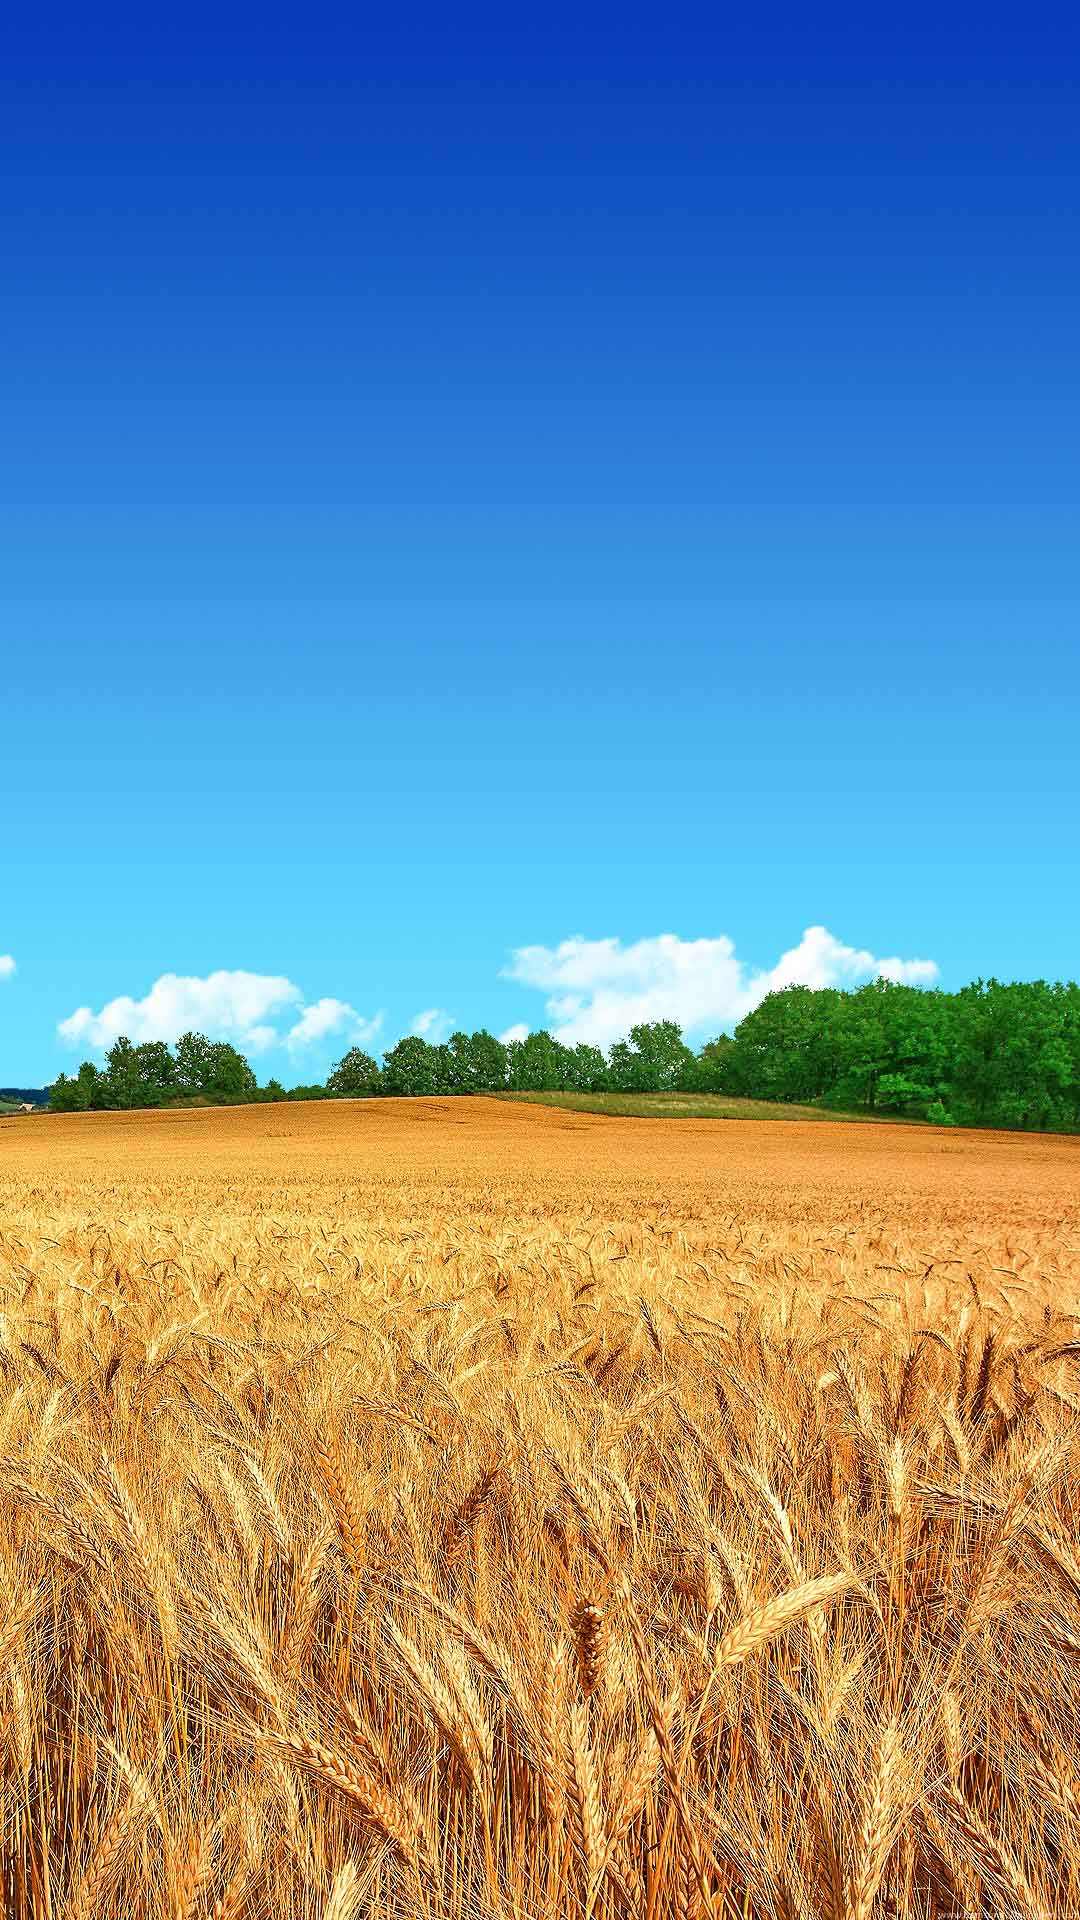 Samsung Galaxy J7 Wallpapers Farmer fields android 1080x1920